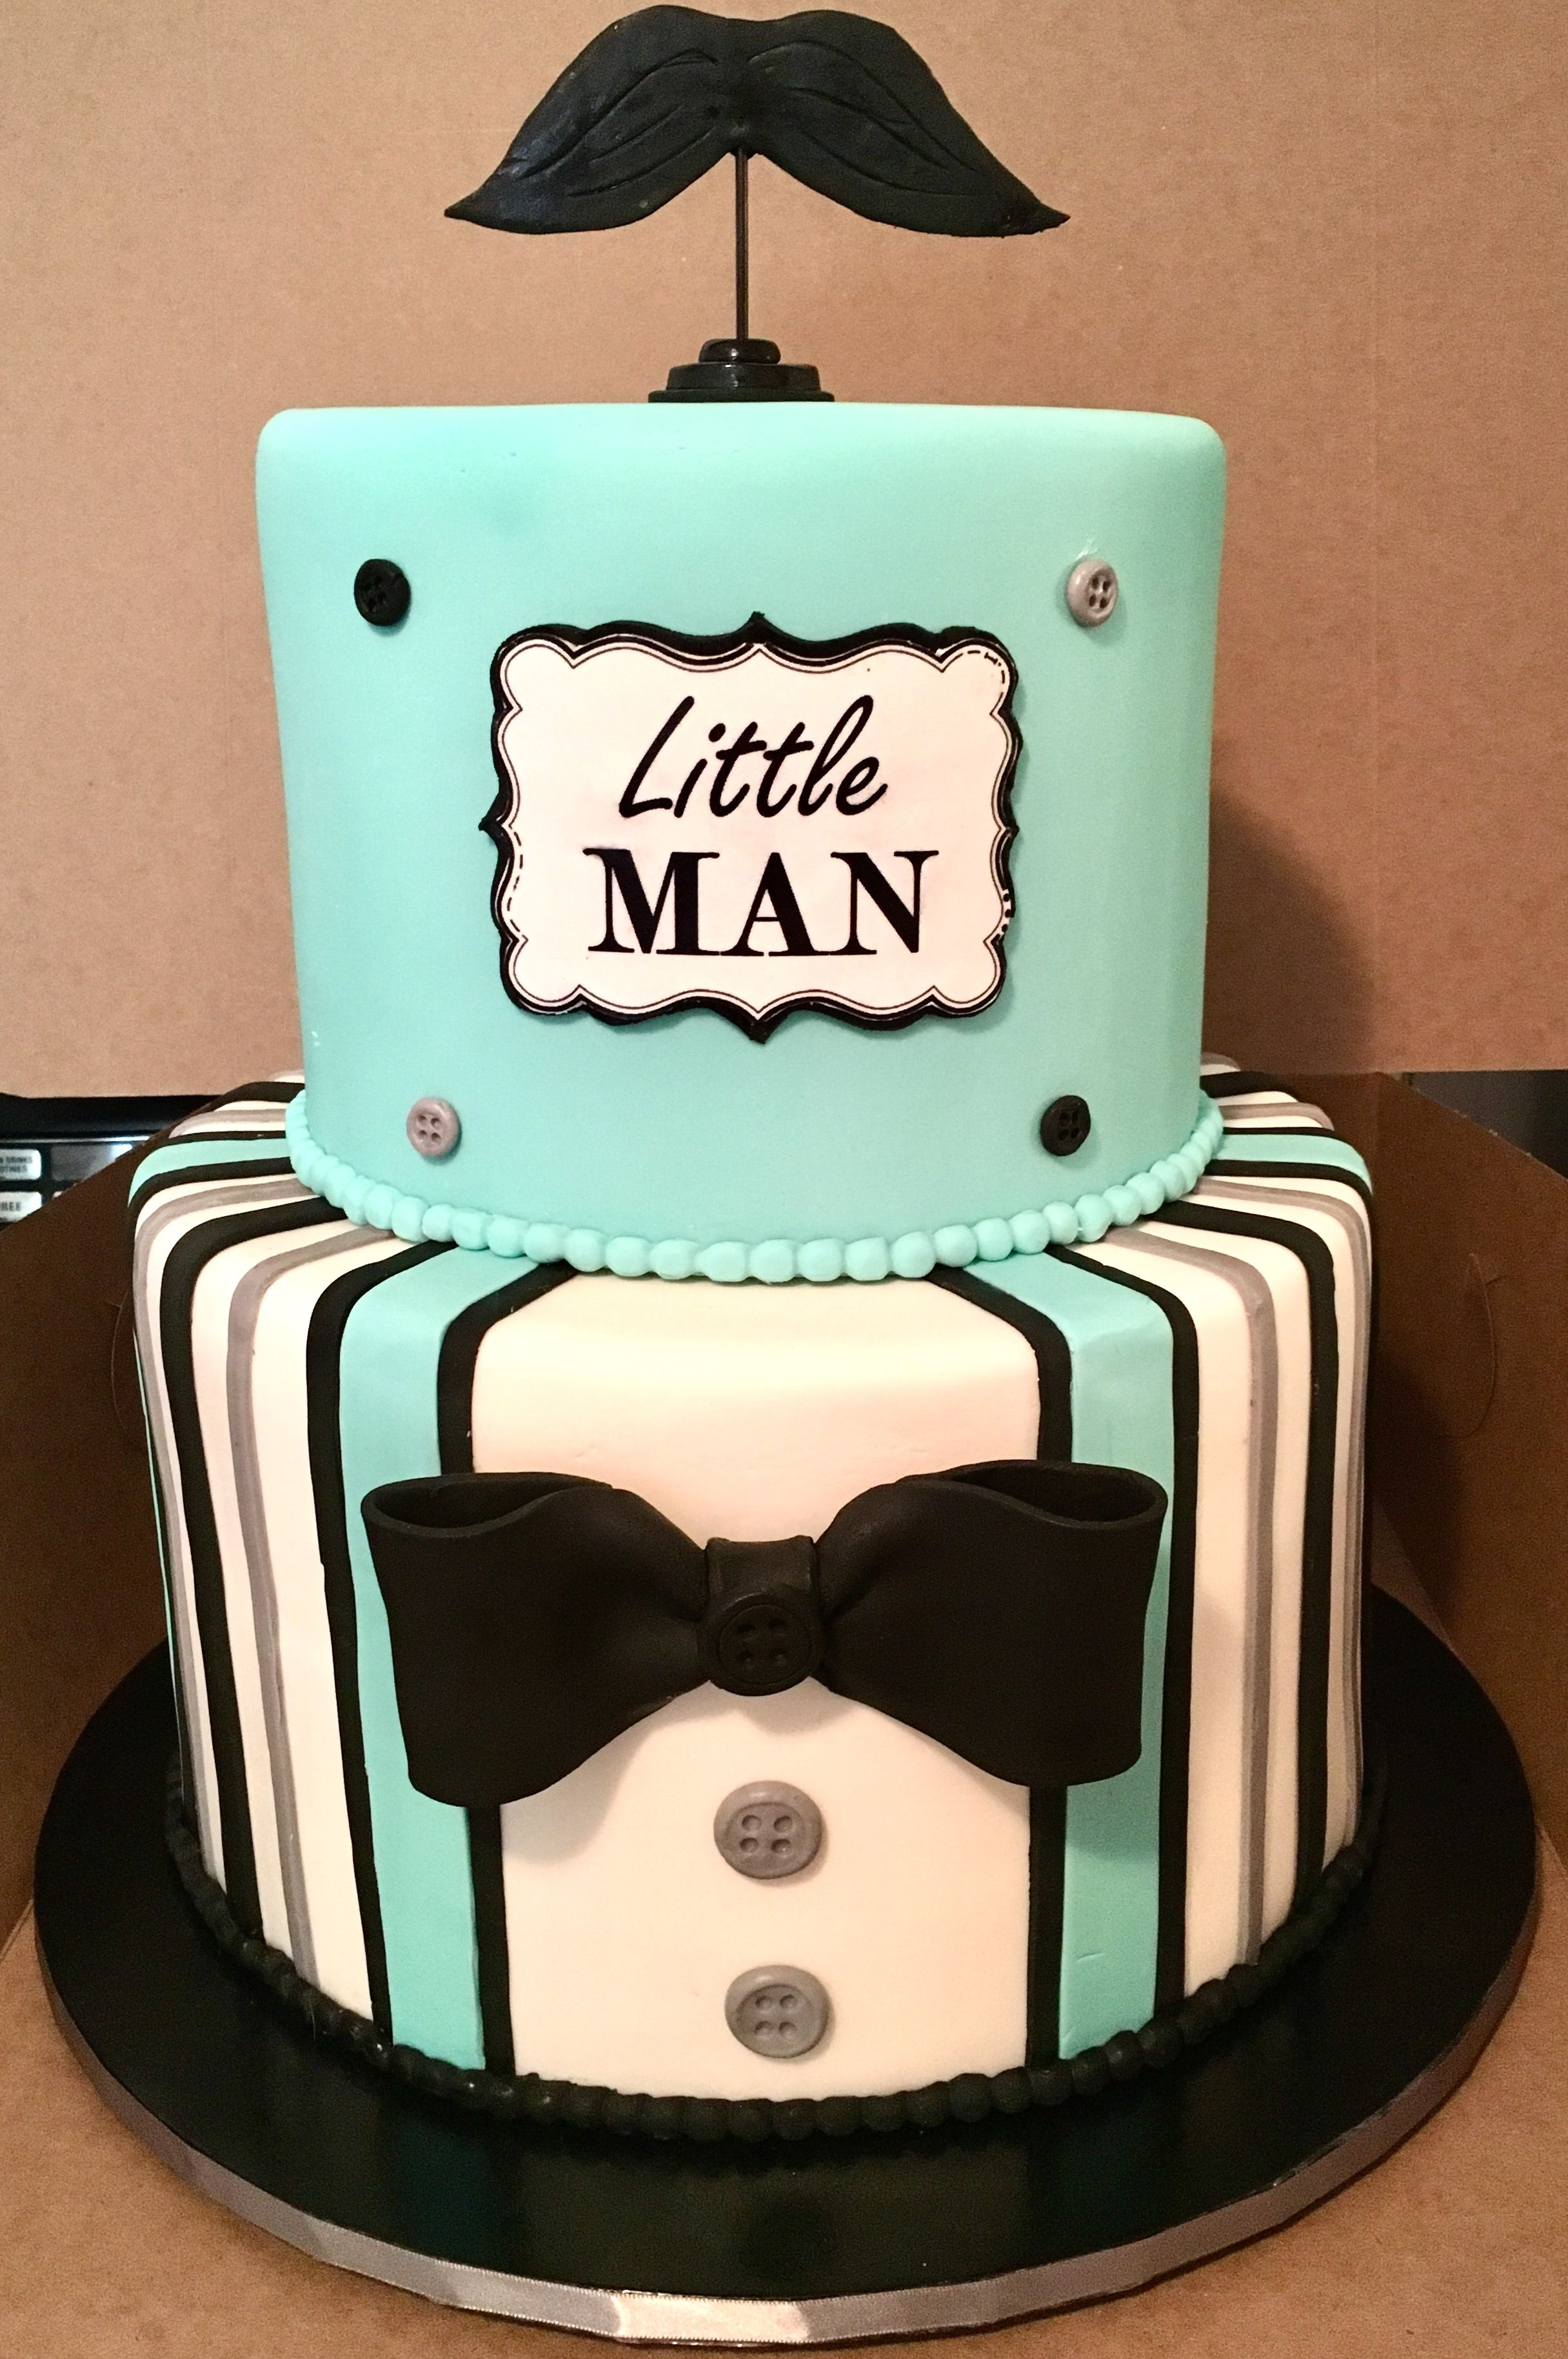 Lil Man Baby Shower Cakes : shower, cakes, Little, (Mustache, Cake), Sweetiesgoldenart, Shower, Cakes, Boys,, Cupcakes, Birthday